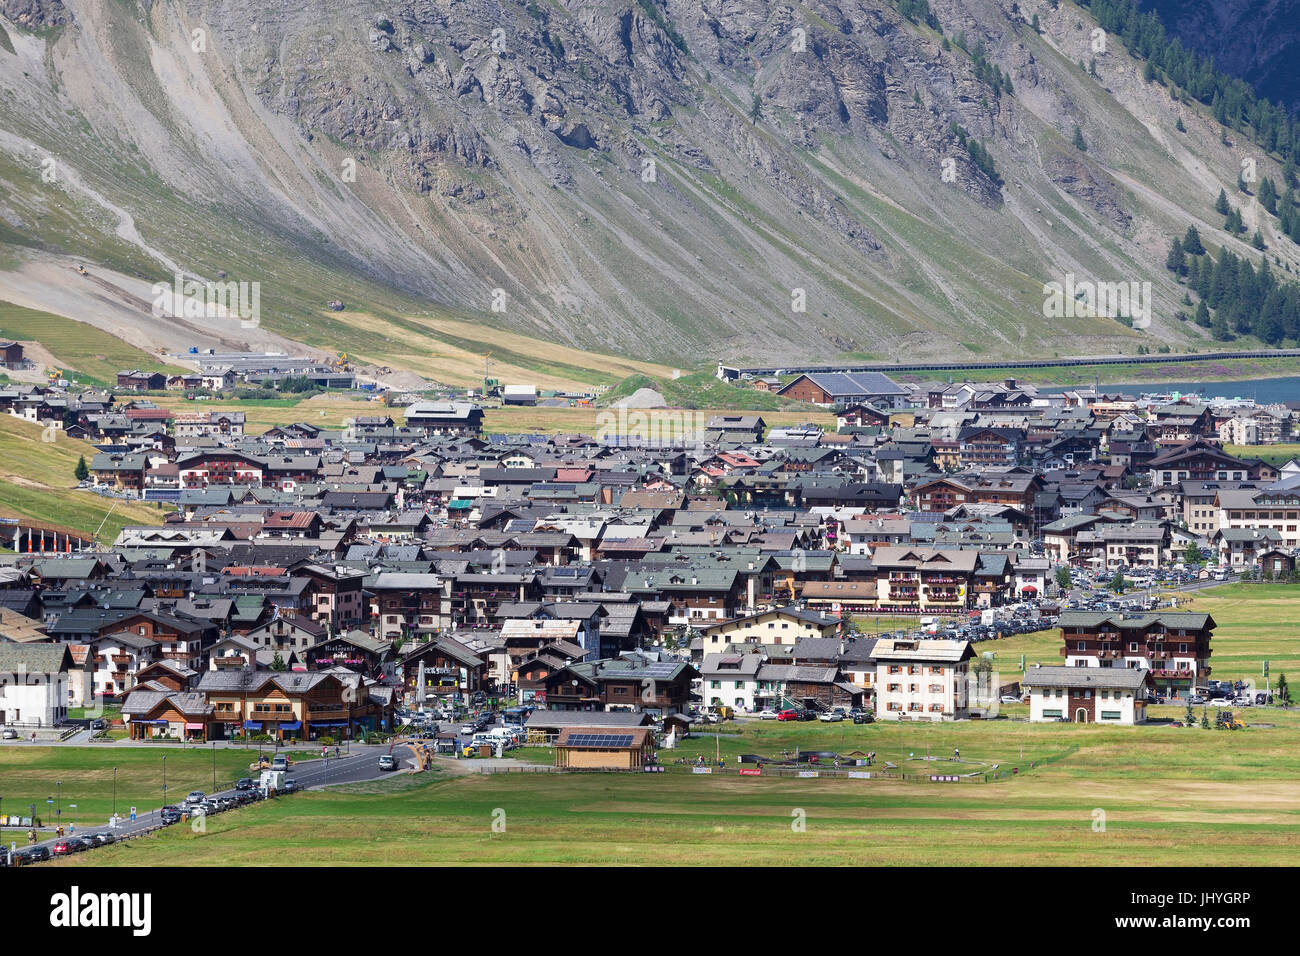 The place Livigno, province of Sondrio, Lombardy, Italy - Village Livigno, Sondrio region, Lombardy, Italy, Die - Stock Image